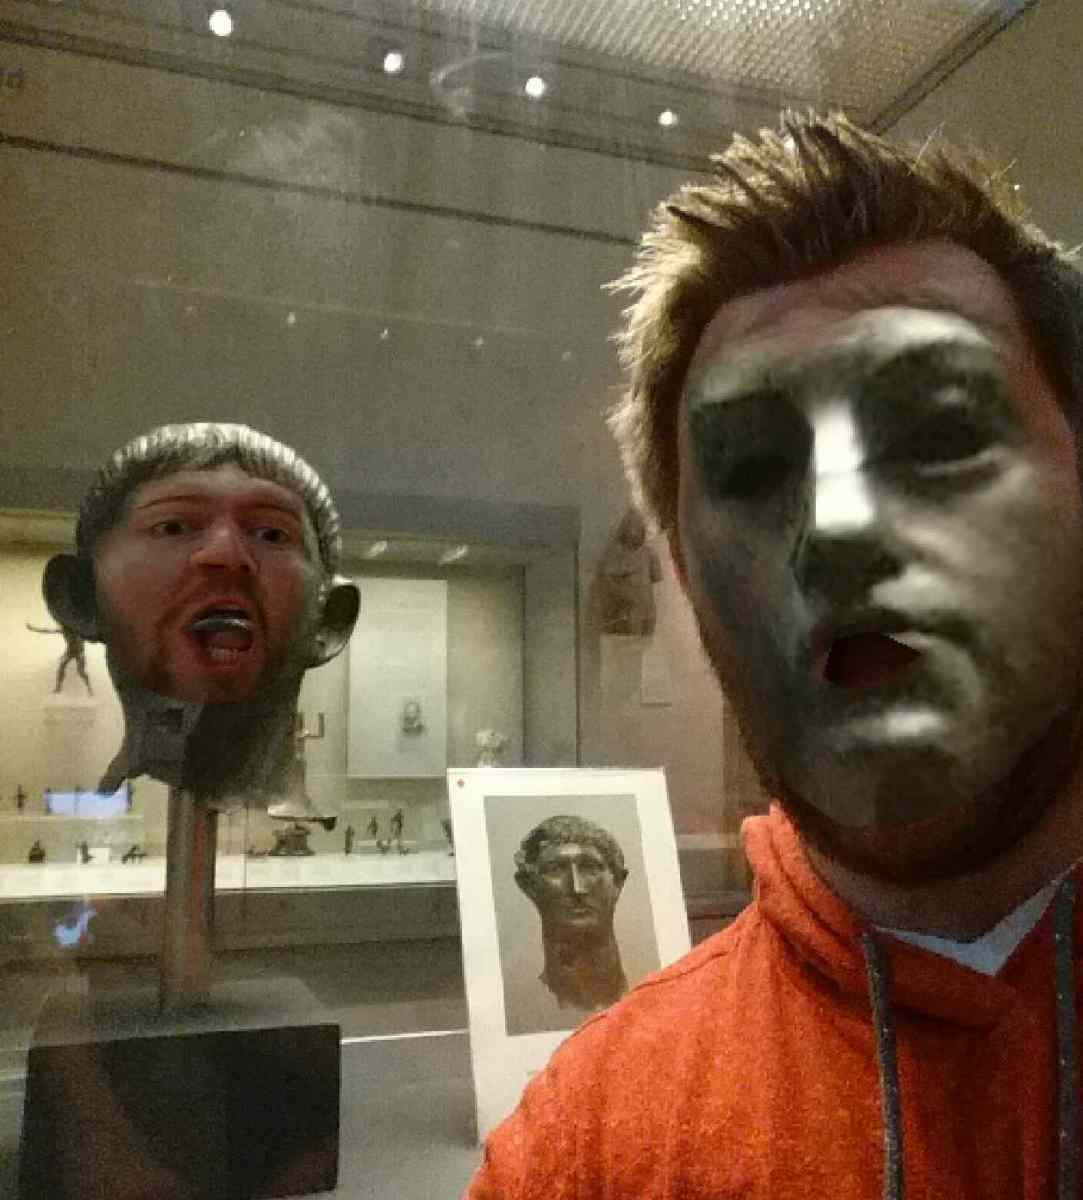 Swapping Faces With Statues Is Rather Disturbing Boing Boing